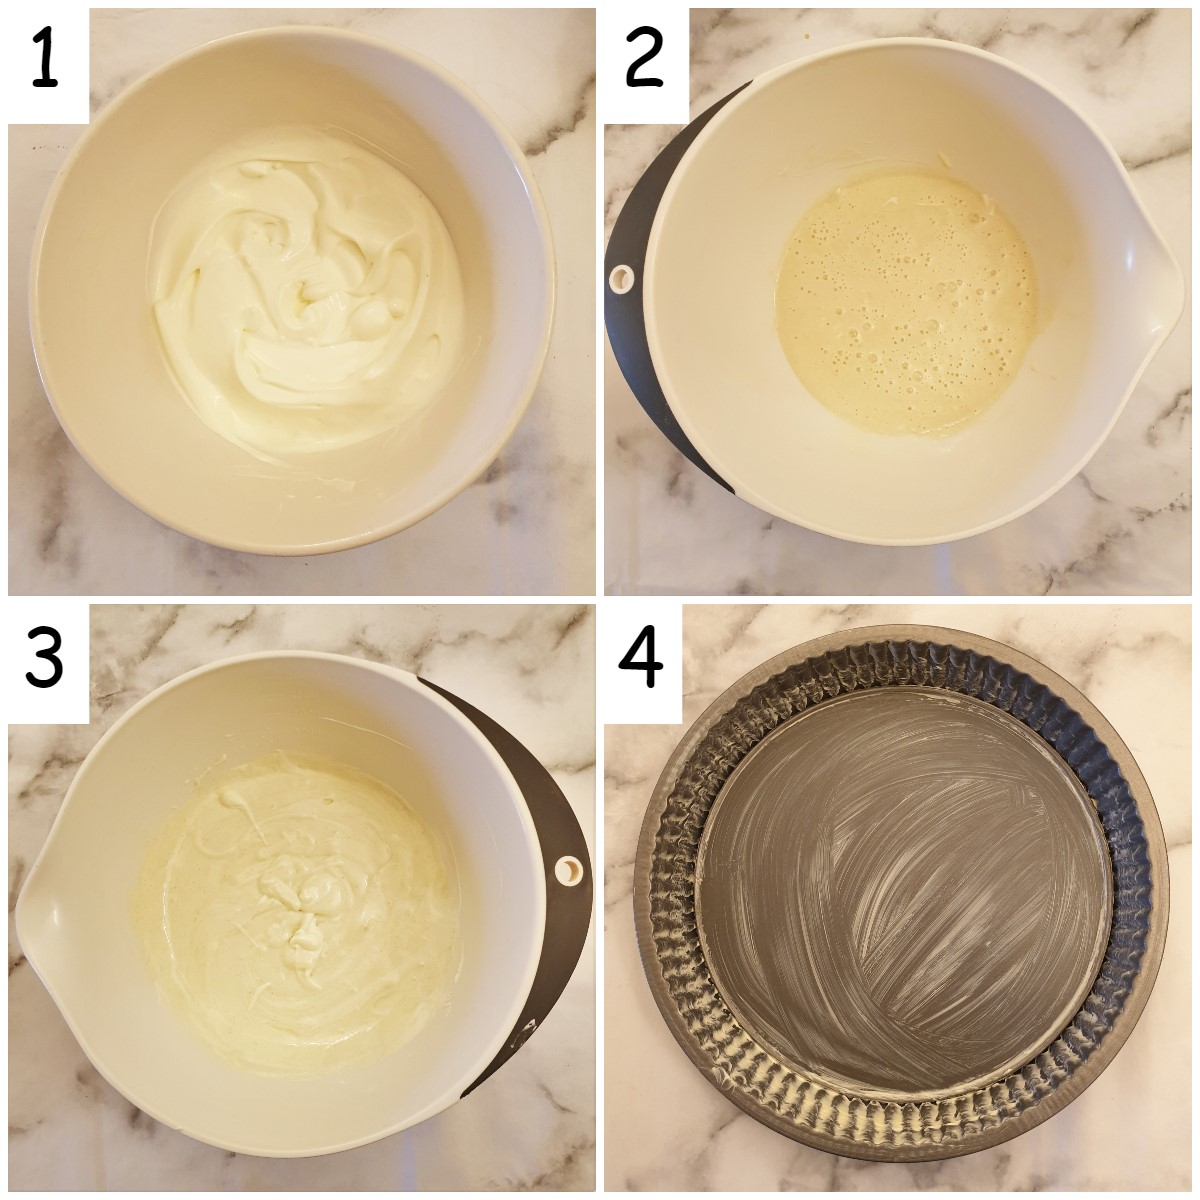 Steps for mixing the batter.